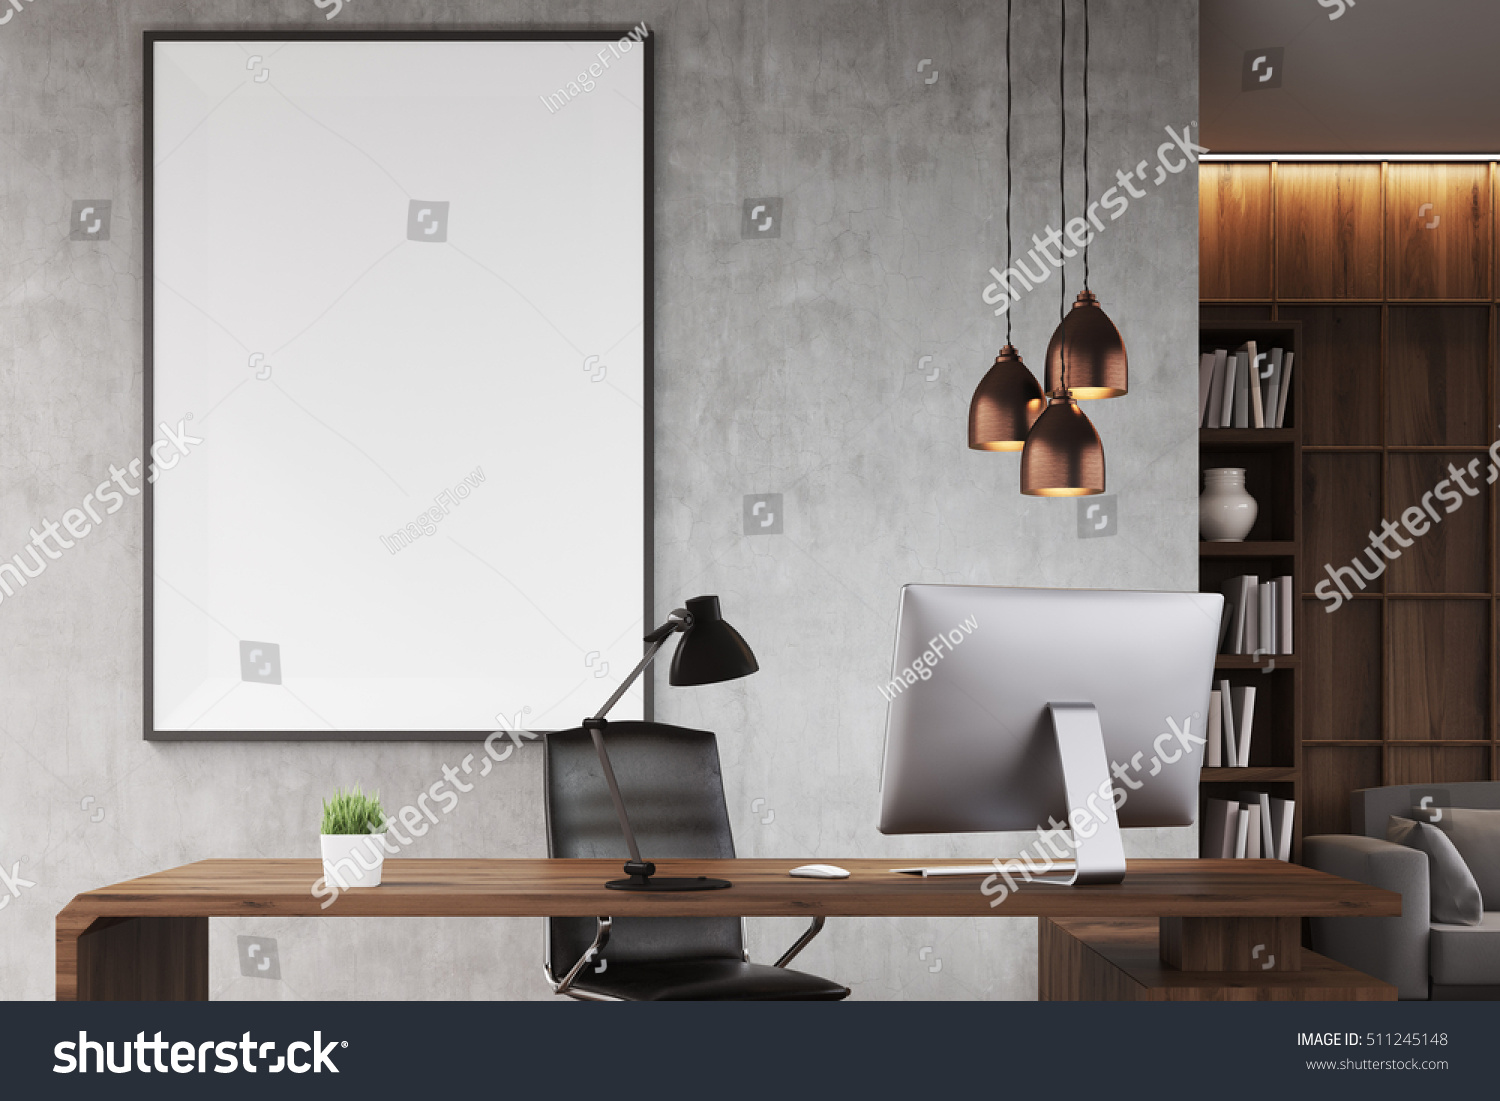 Poster ceo office bookcase sofa table stock illustration 511245148 poster in ceo office with bookcase sofa table and large vertical poster on concrete geotapseo Gallery